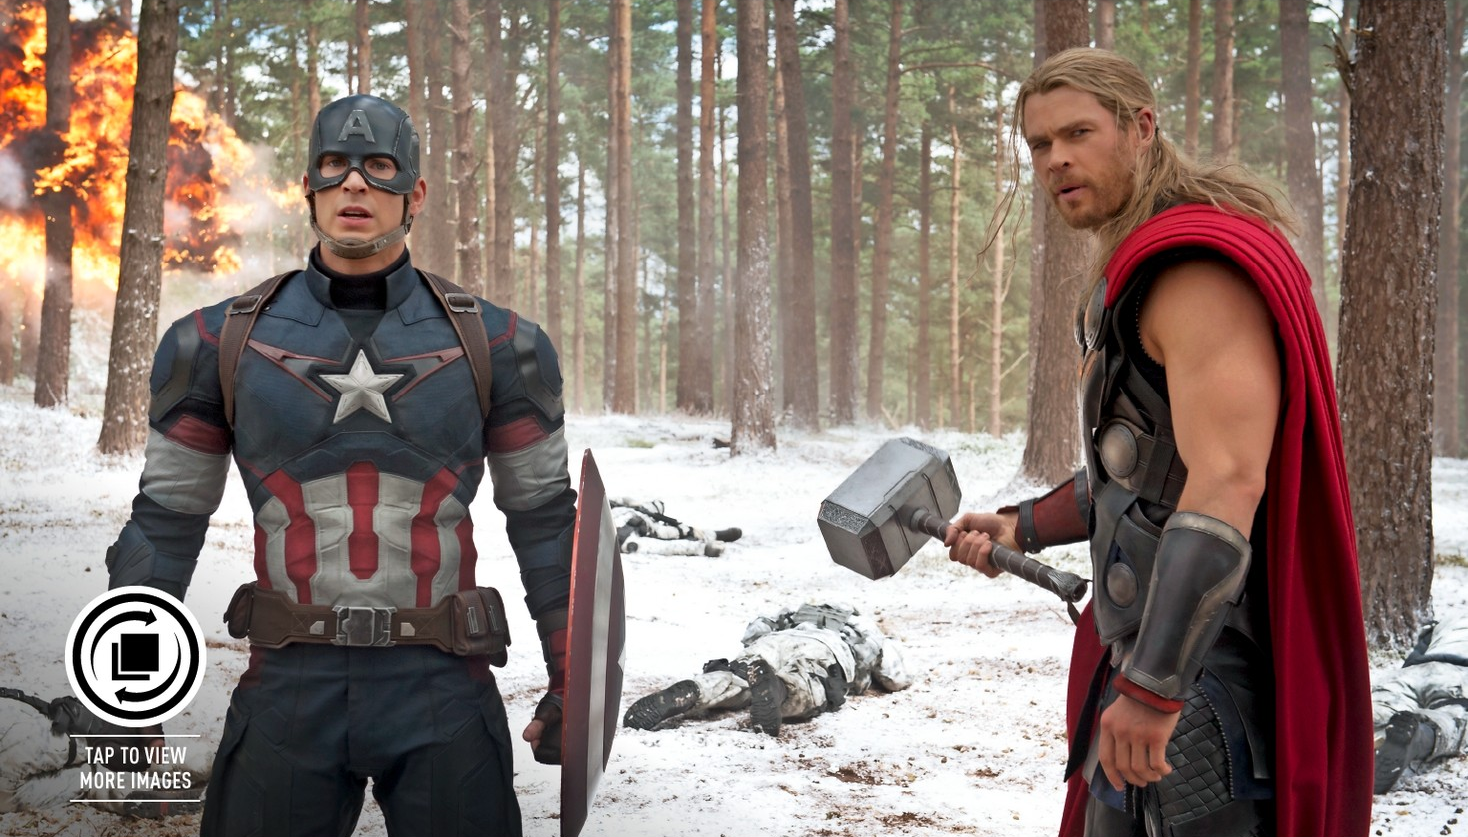 high-res-photos-from-avengers-age-of-ultron7